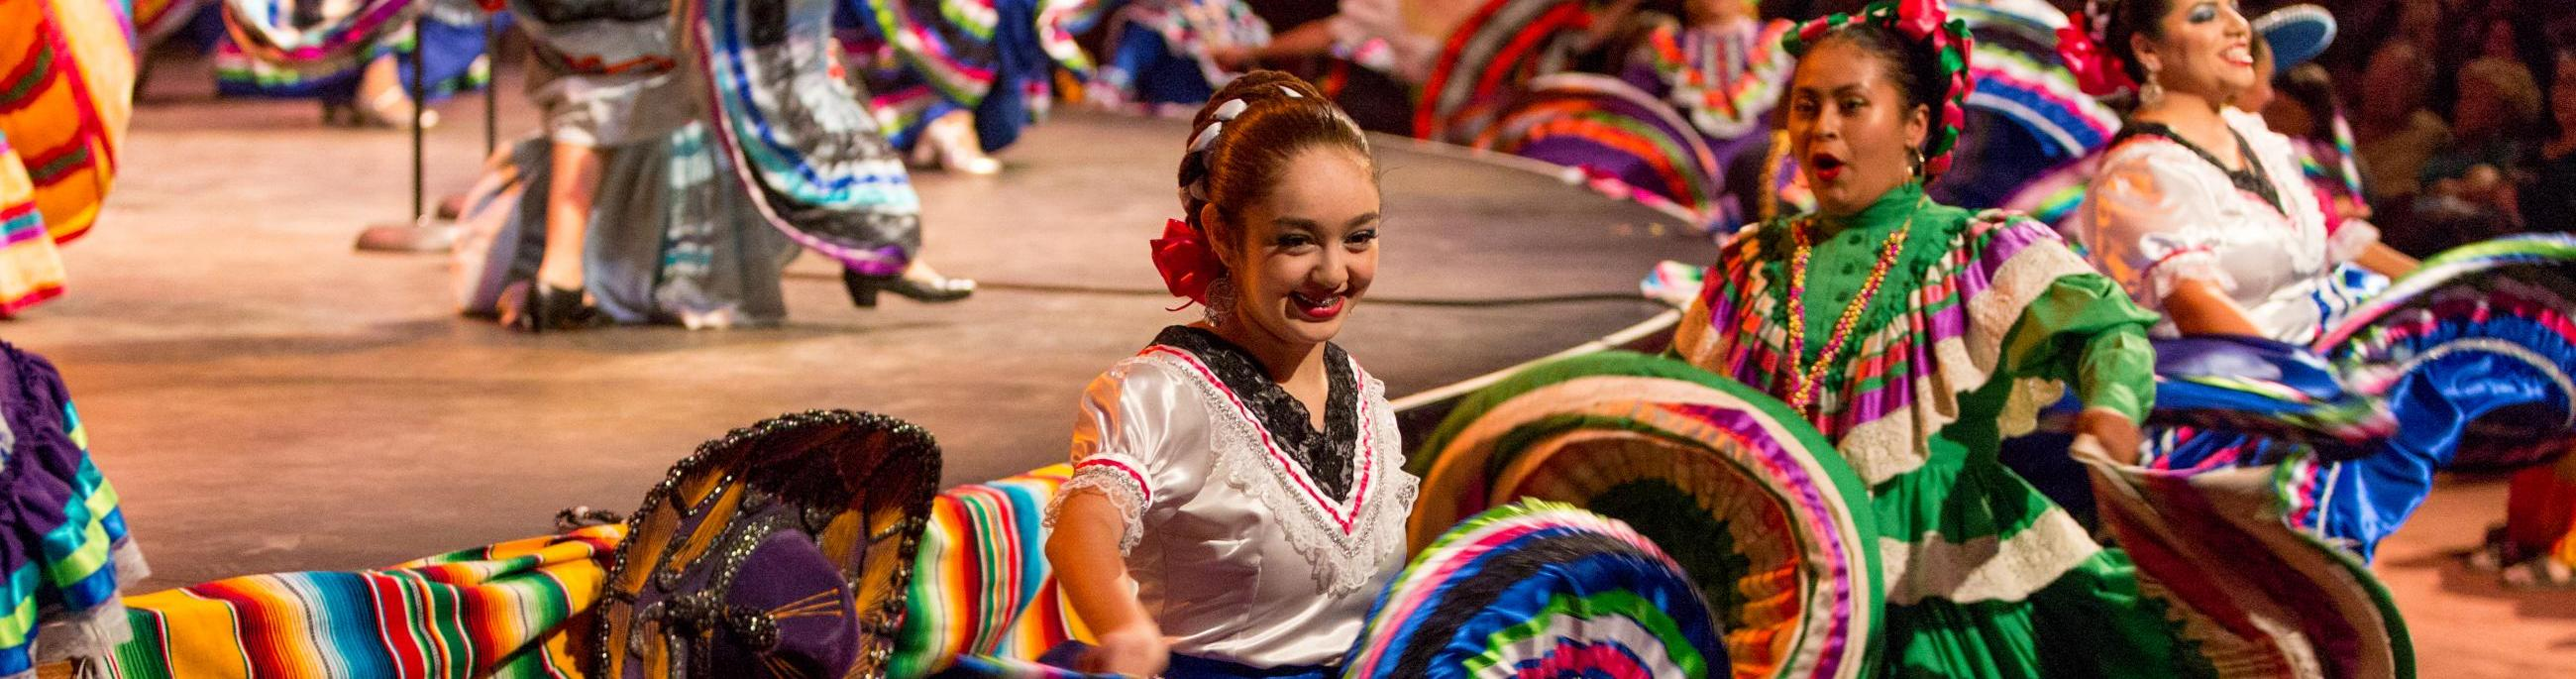 Dancers in action at the mariachi festival